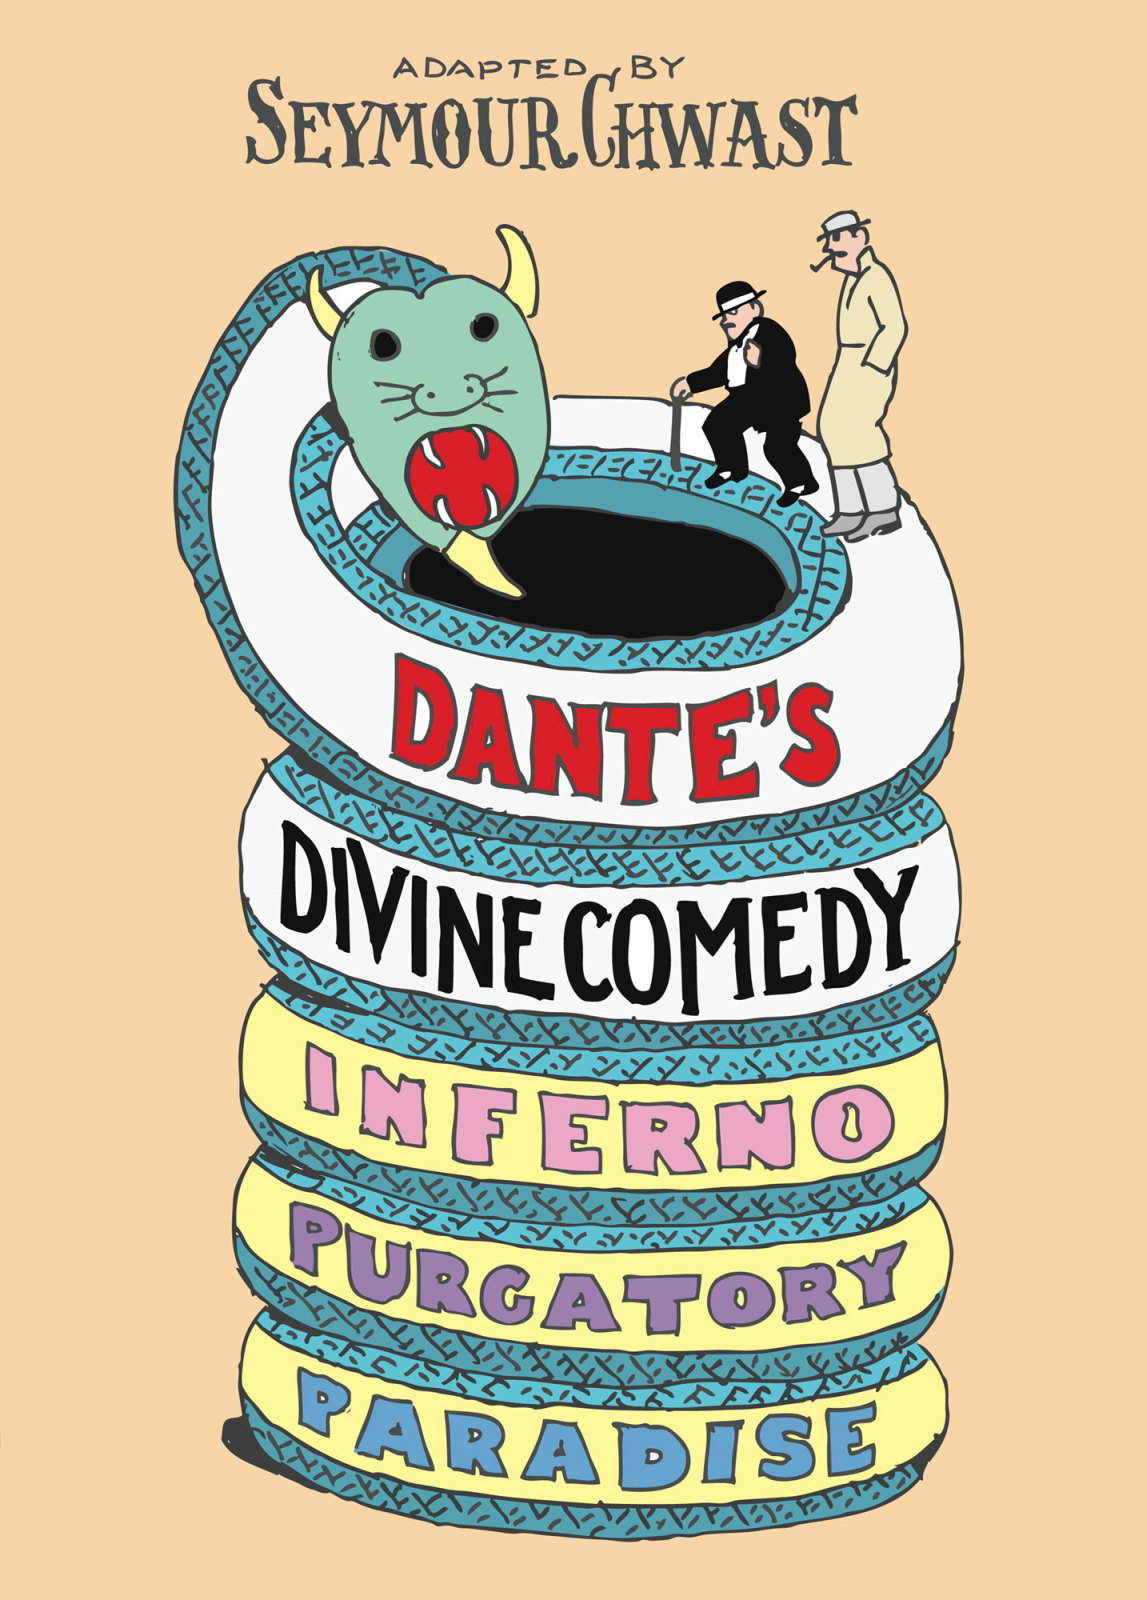 divine comedy contrapasso of dantes inferno essay The divine comedy essay sample mid-way through his life and faced with an ignominious end, dante alighieri wrote his greatest work, the divine comedy.